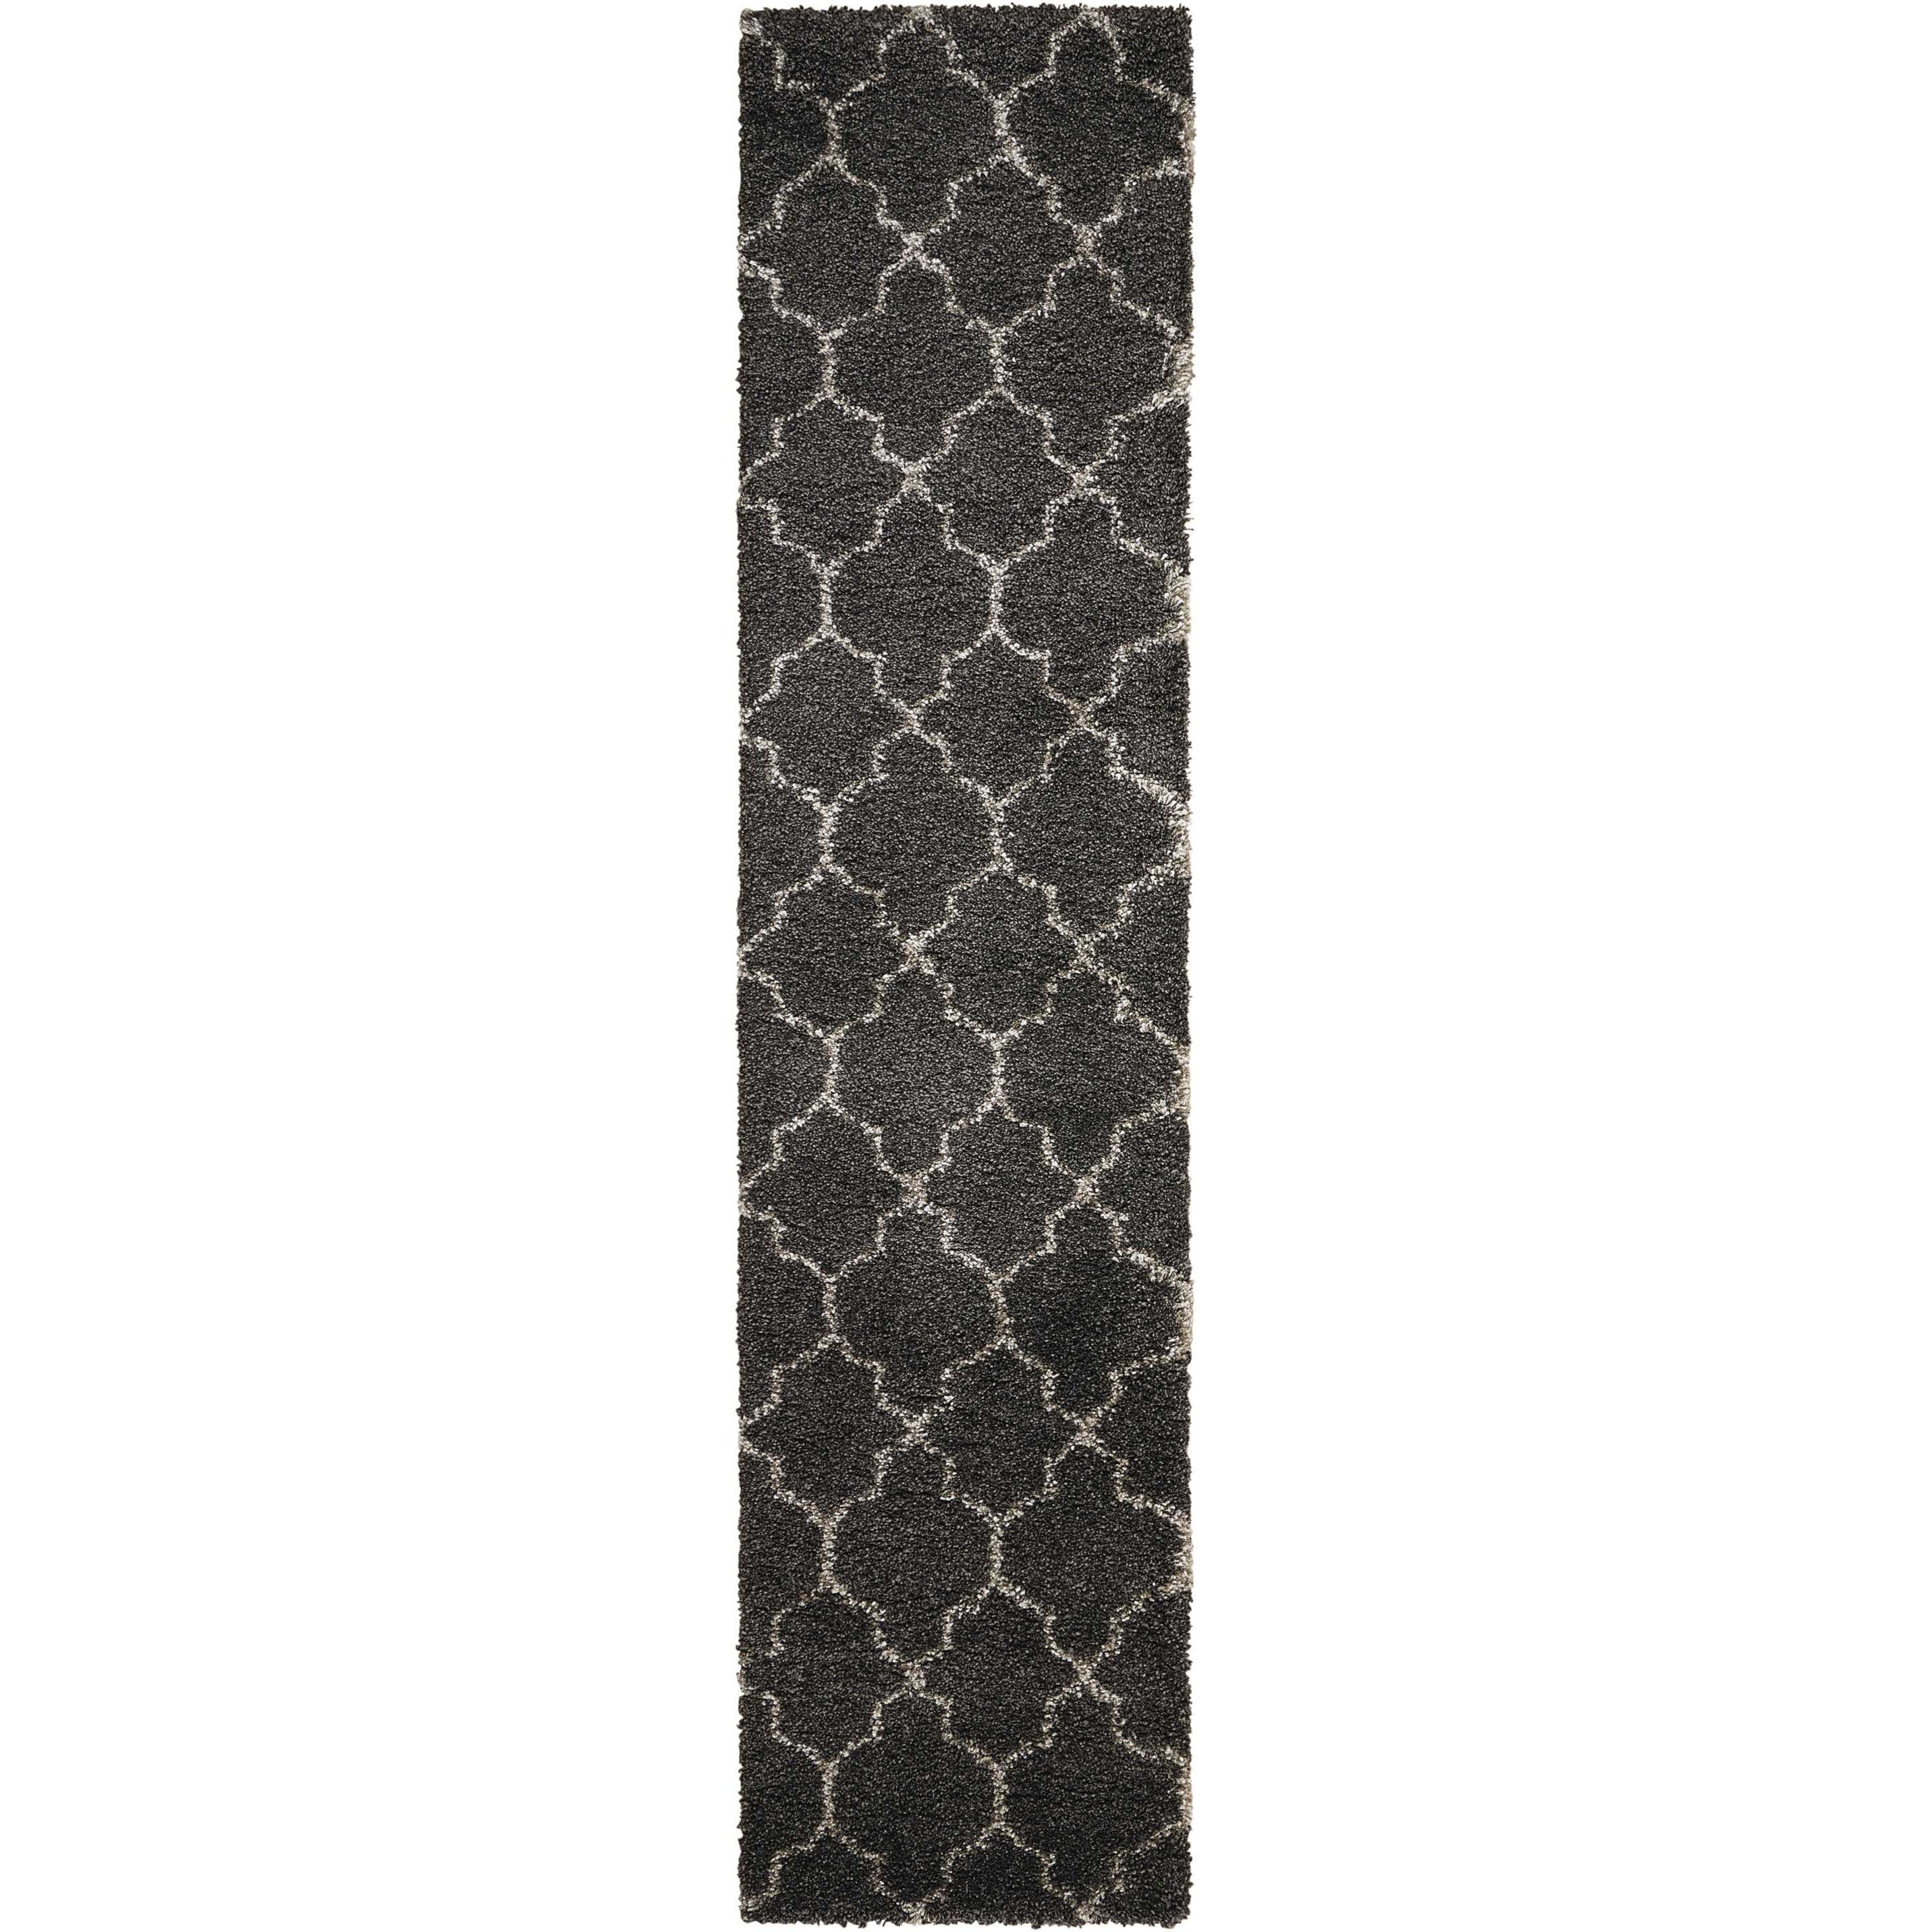 Amore Amore AMOR2 Black 10' Runner  Hallway Rug by Nourison at Home Collections Furniture